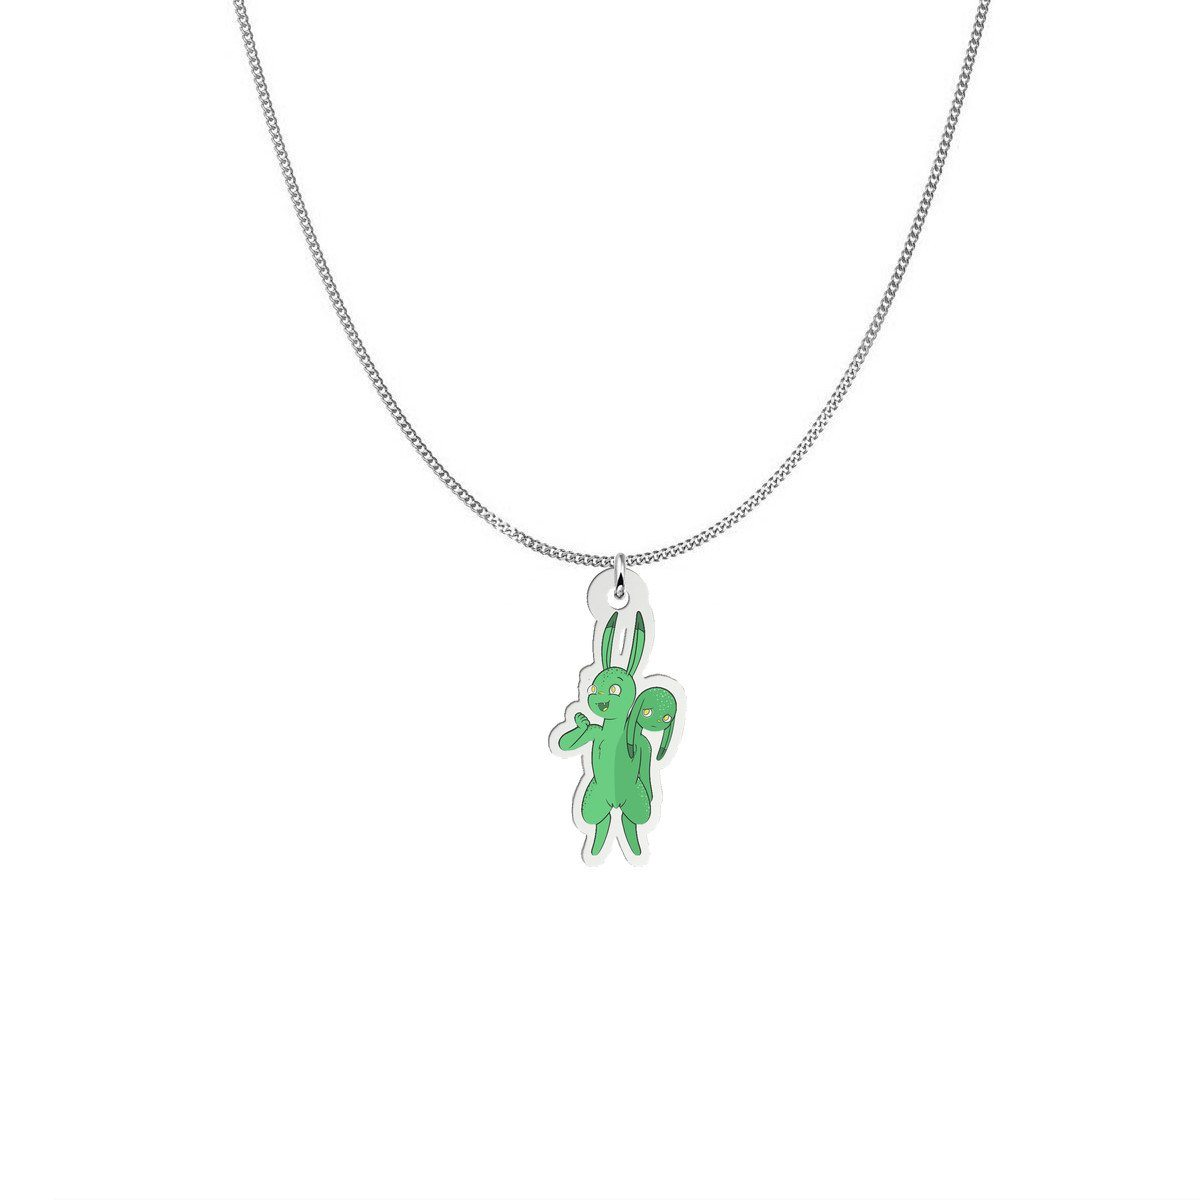 Lara the Bipolar Disorder Monster Silver Necklace - The Unchargeables